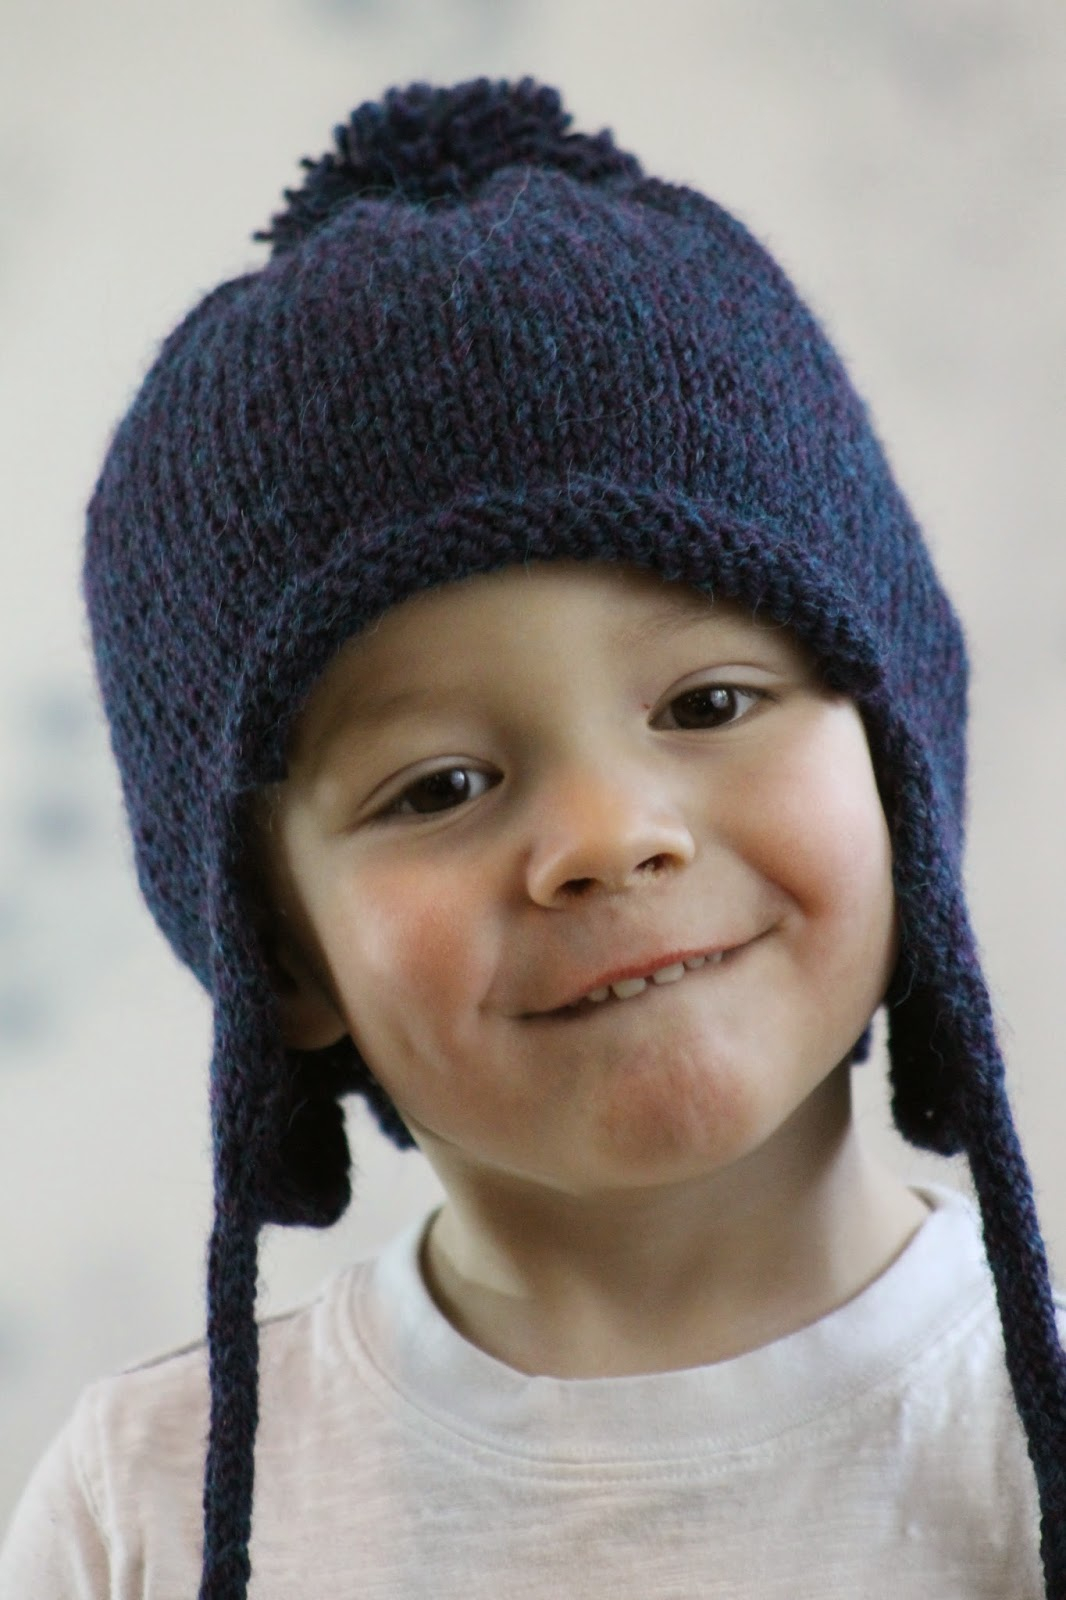 Baby Earflap Hat Knitting Pattern Balls To The Walls Knits All In The Family Earflap Hat